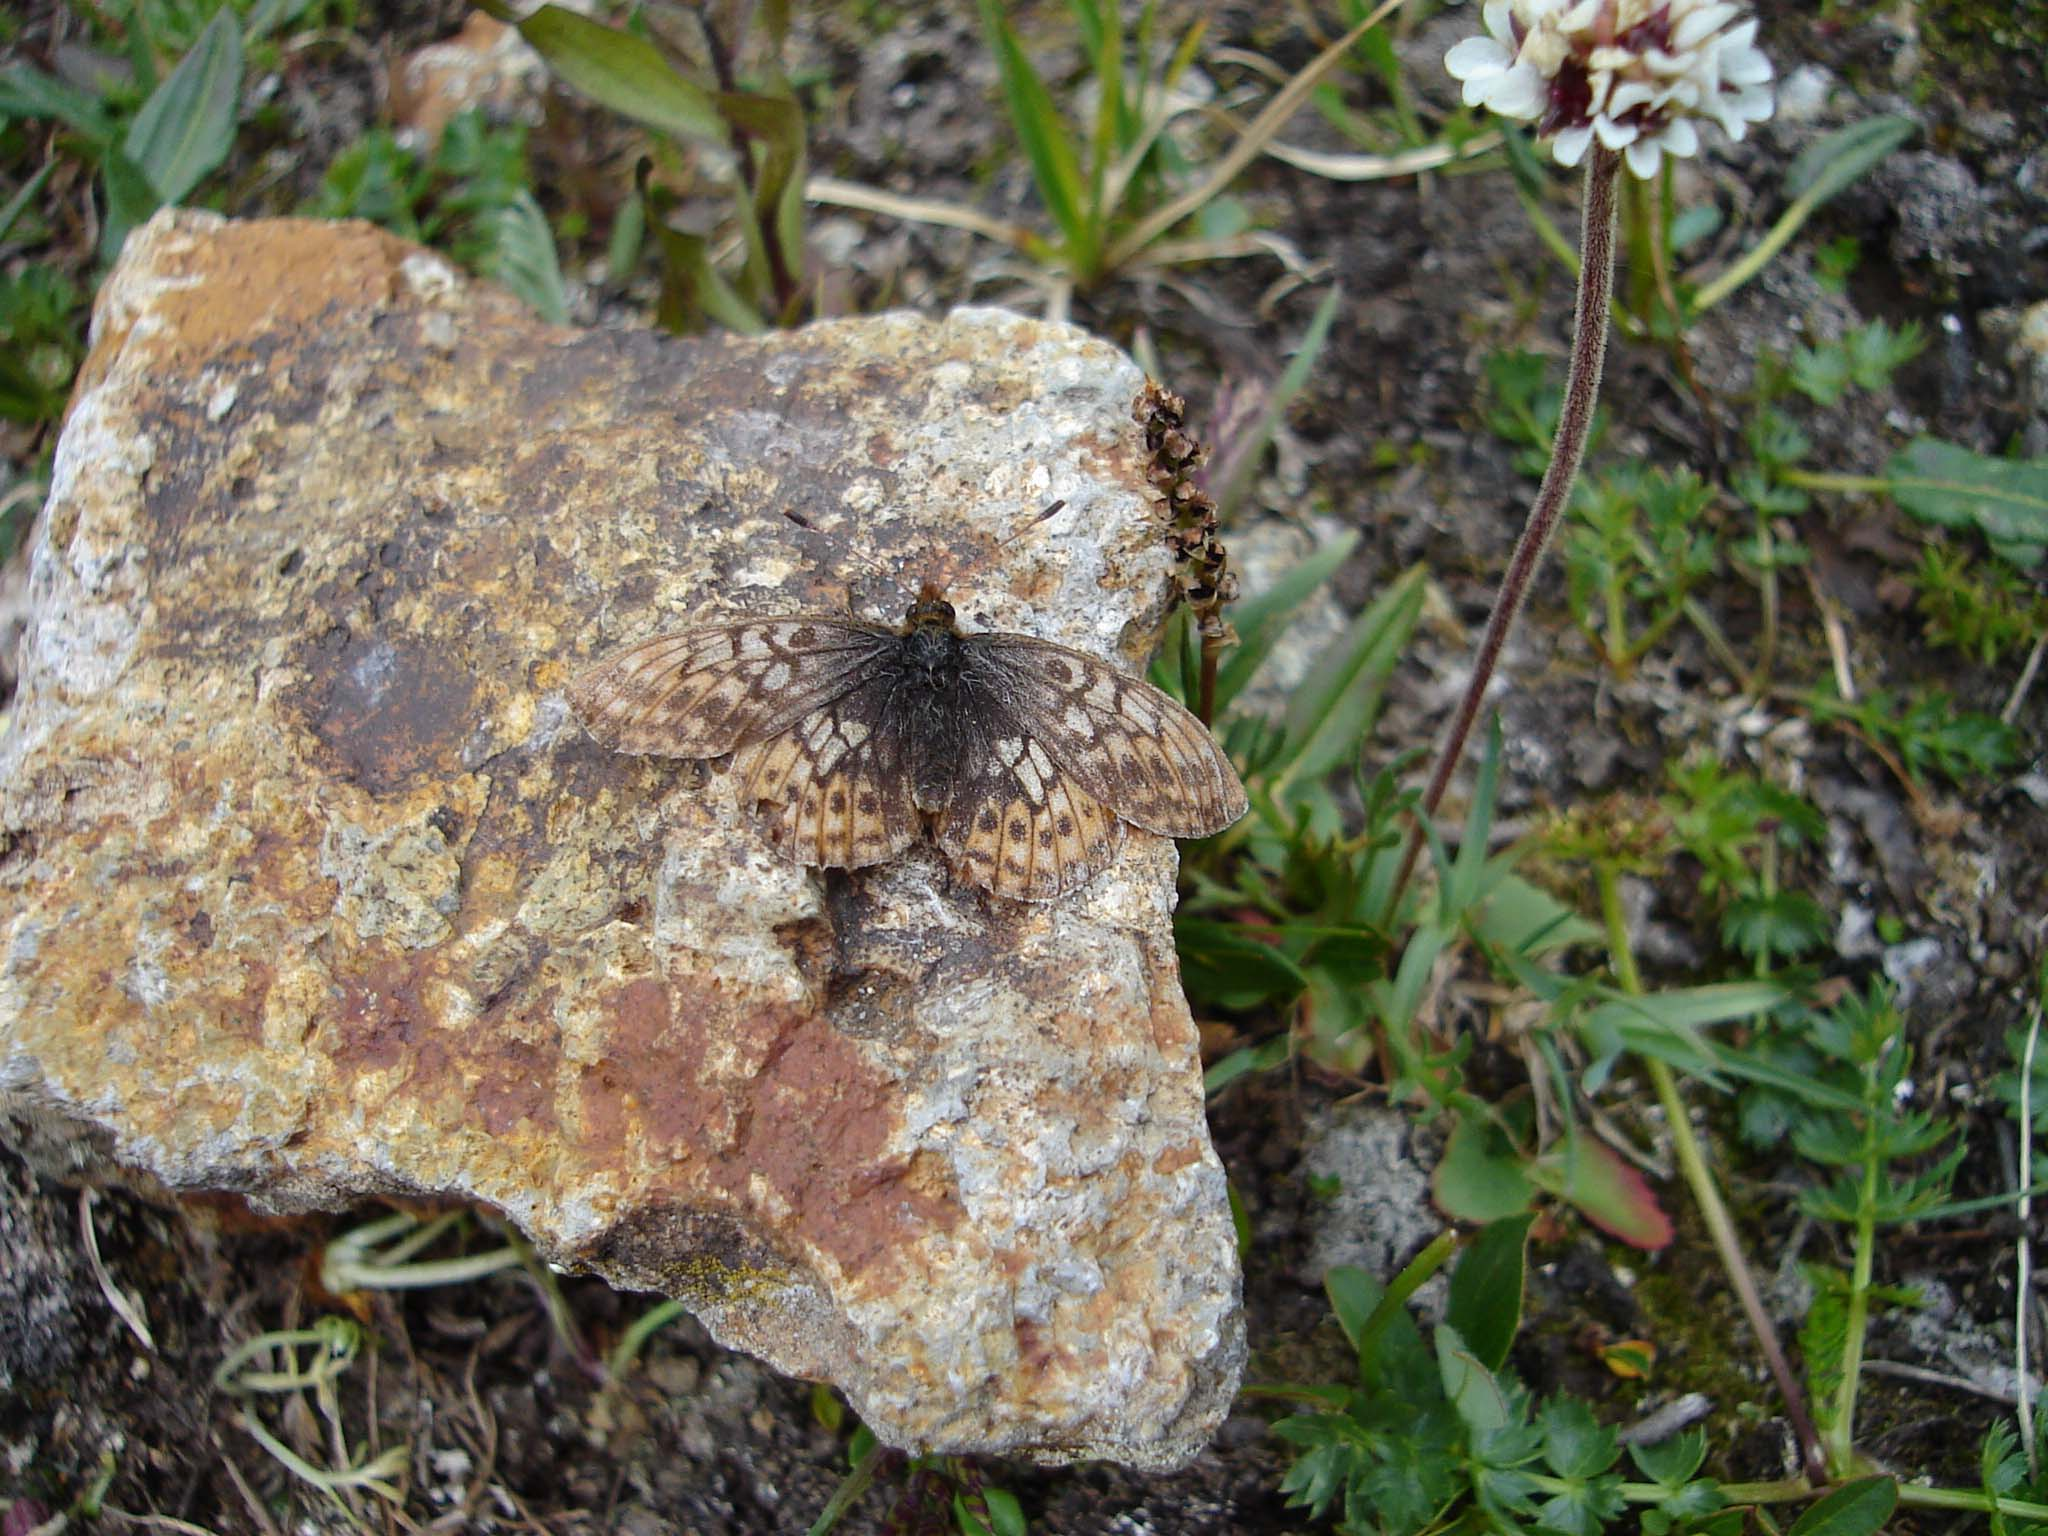 A brown, mottled butterfly blends in nearly perfectly on a brownish rock.